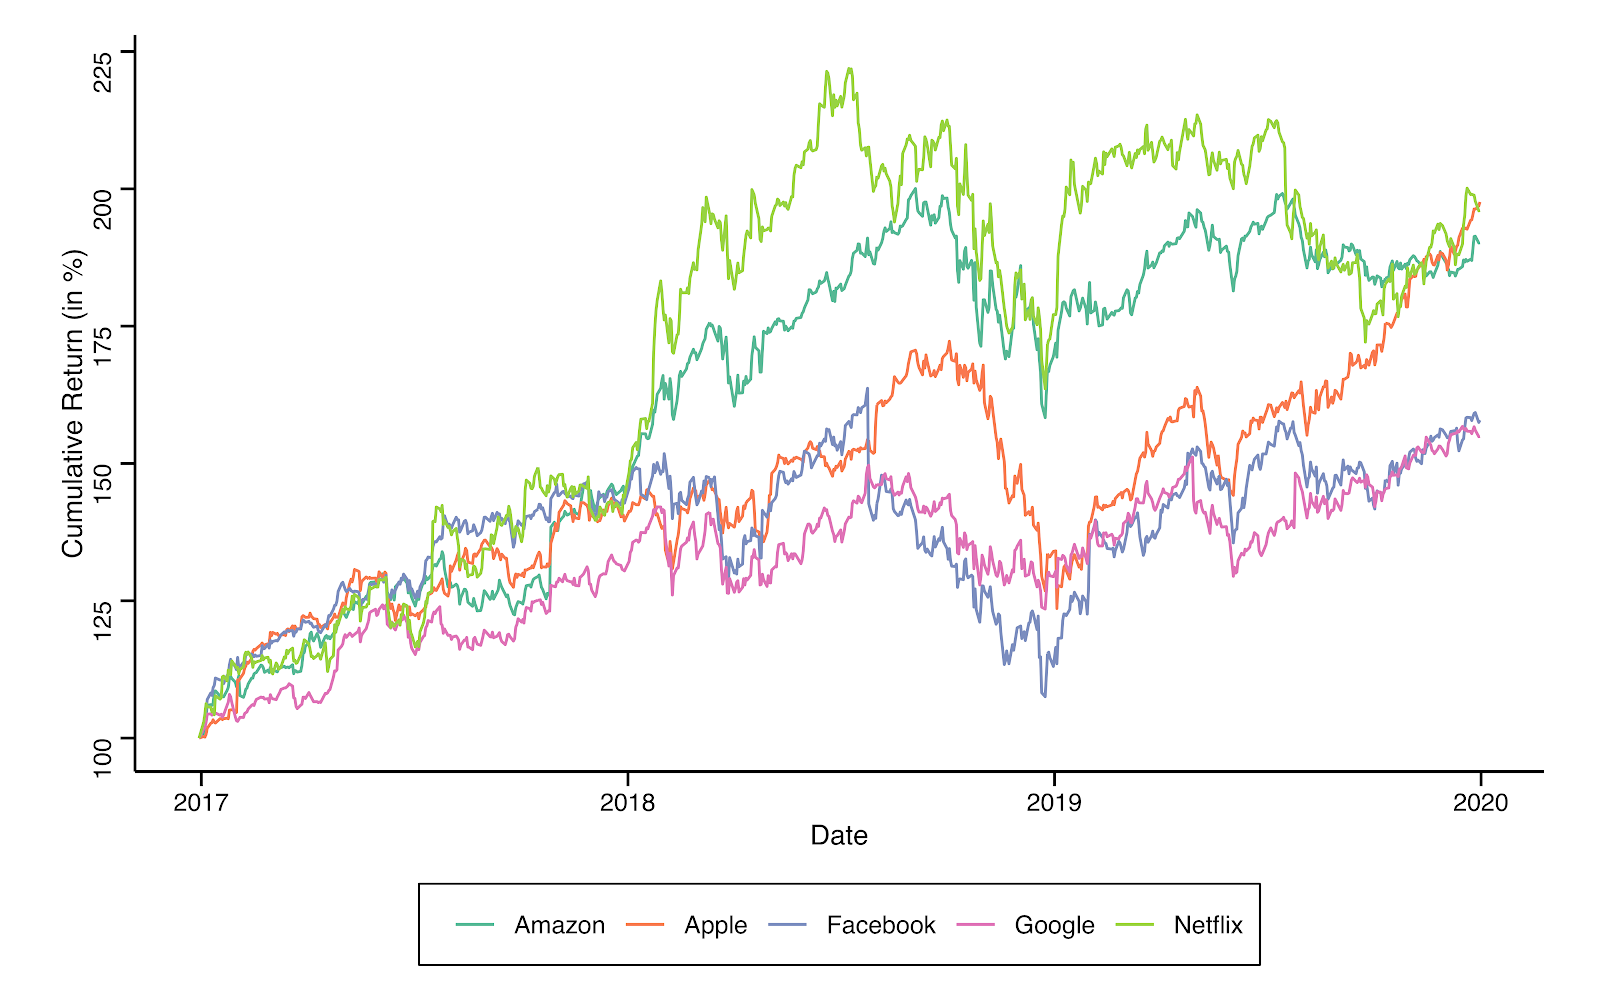 January 2017–December 2019 cumulative returns for FAANG stocks (Facebook, Apple, Amazon, Netflix and Google)